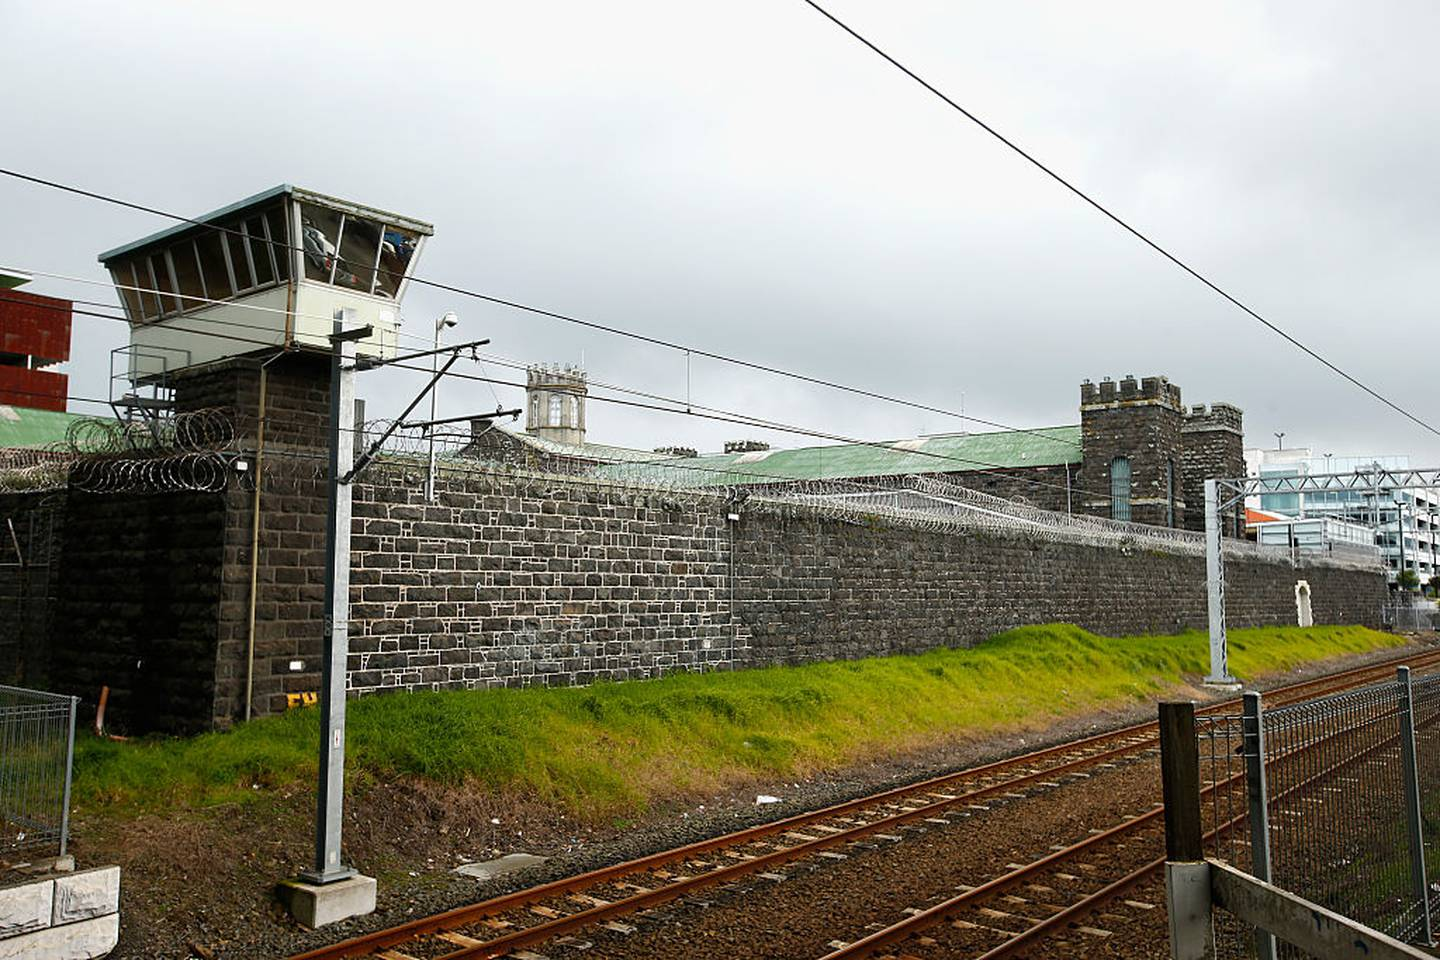 AUCKLAND, NEW ZEALAND - JULY 28:  General views of Mt Eden Prison on July 28, 2015 in Auckland, New Zealand. The correctional facility, which is managed by Serco, has been in the spotlight following reports of prisoner abuse.  (Photo by Phil Walter/Getty Images)